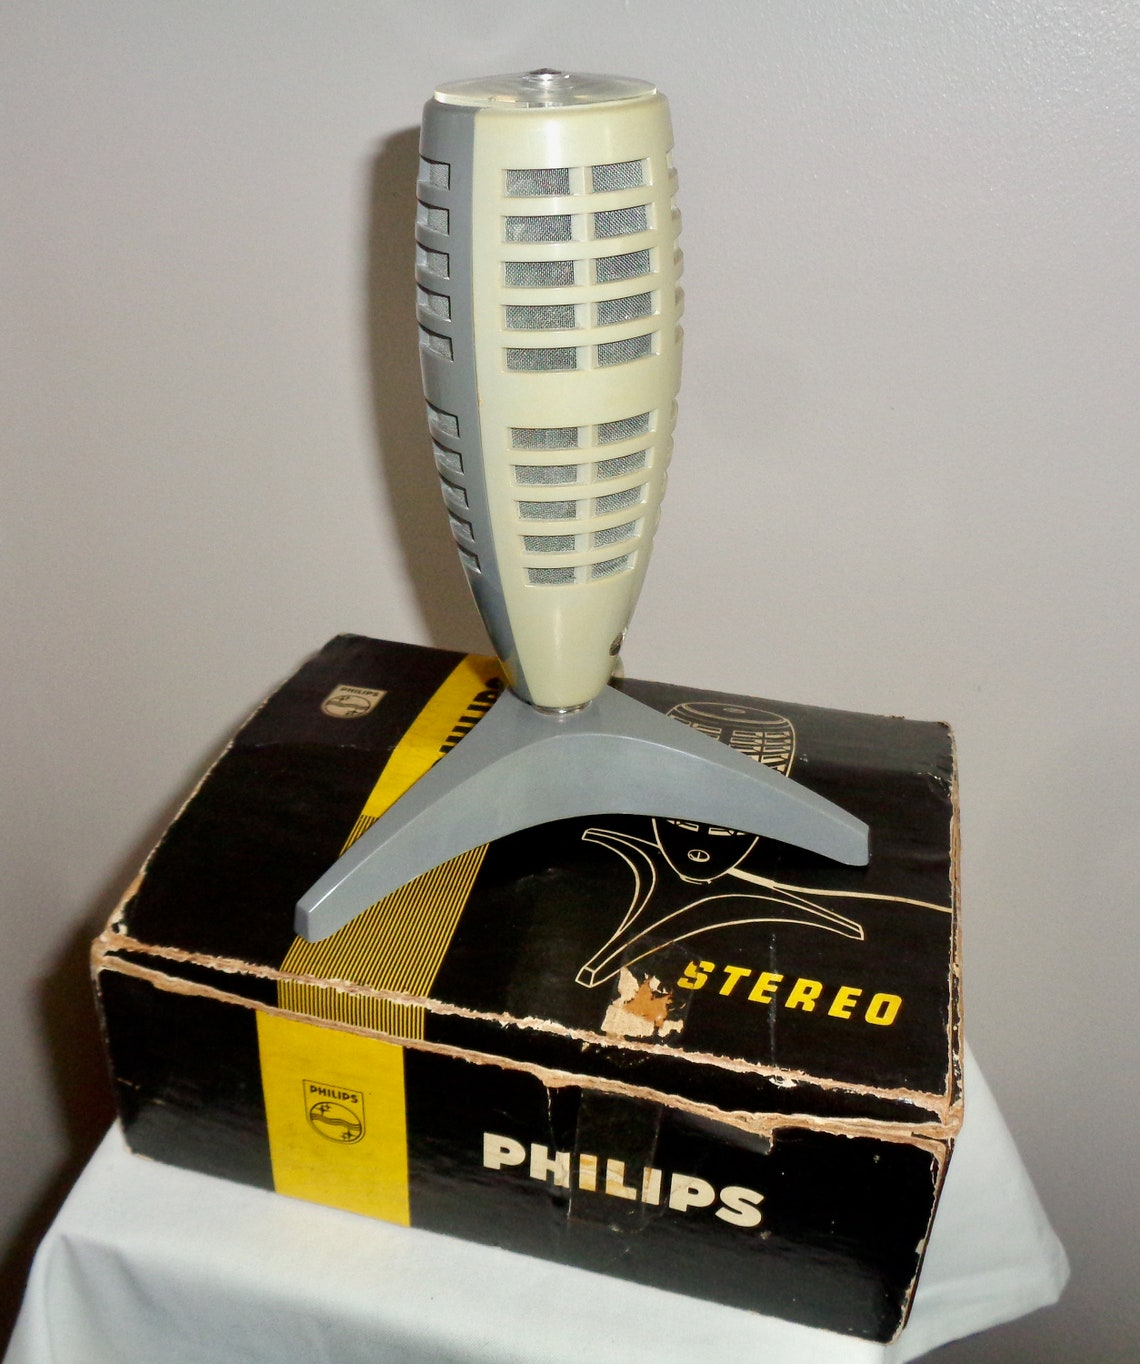 Philips EL3752/00 Table Top Stereo Microphone. Vintage Working 1960s PHILIPS  Recording Microphone